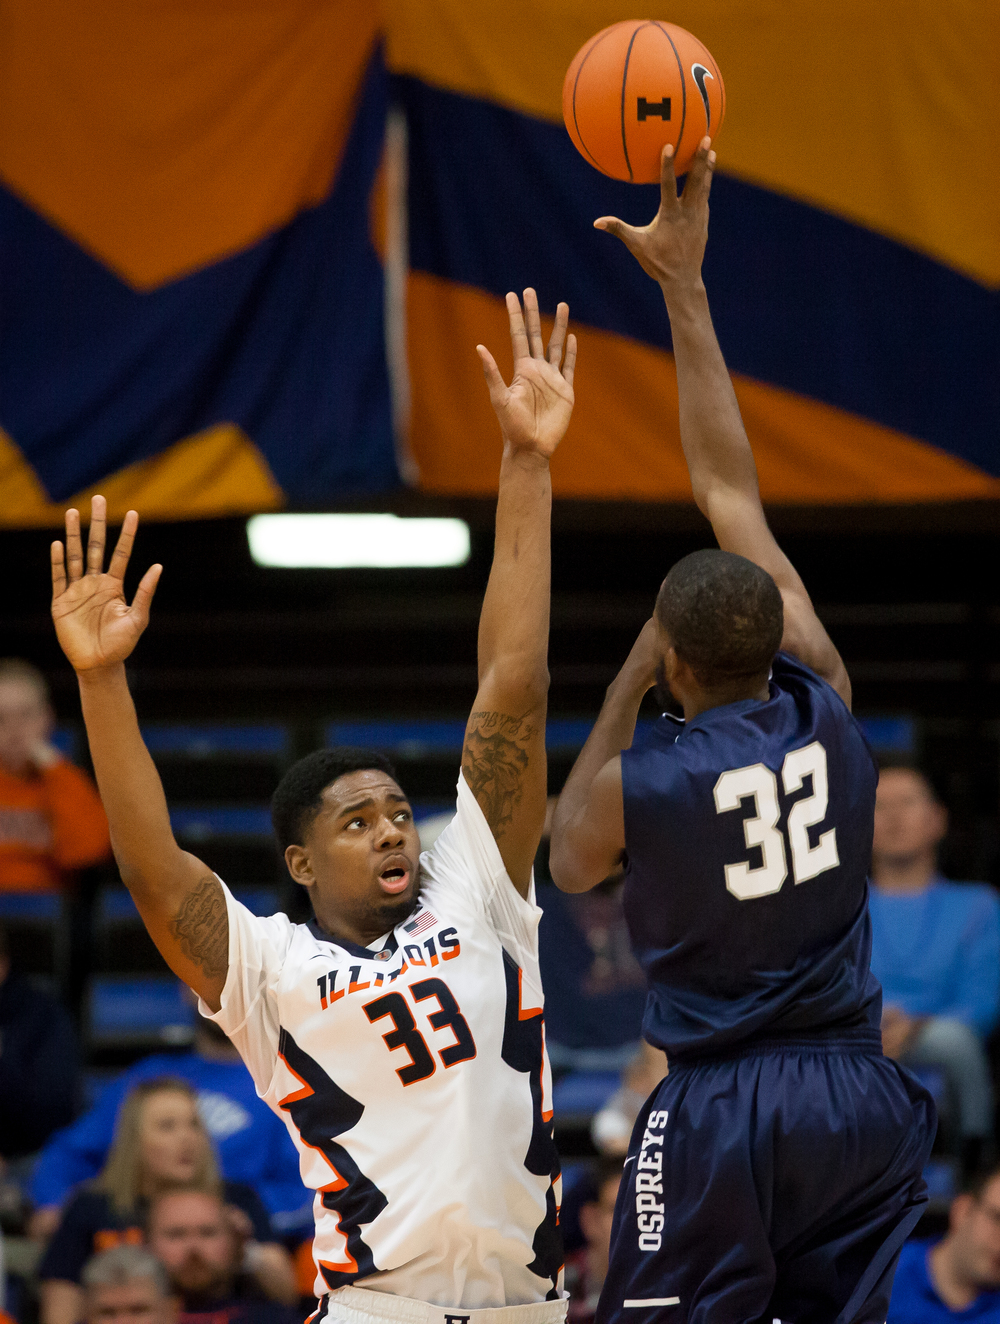 University of North Florida's Demarcus Daniels (32) puts a shot up over University of Illinois' Mike Thorne Jr. (33) in the first half at the Prairie Capital Convention Center, Friday, Nov. 13, 2015, in Springfield, Ill. Justin L. Fowler/The State Journal-Register